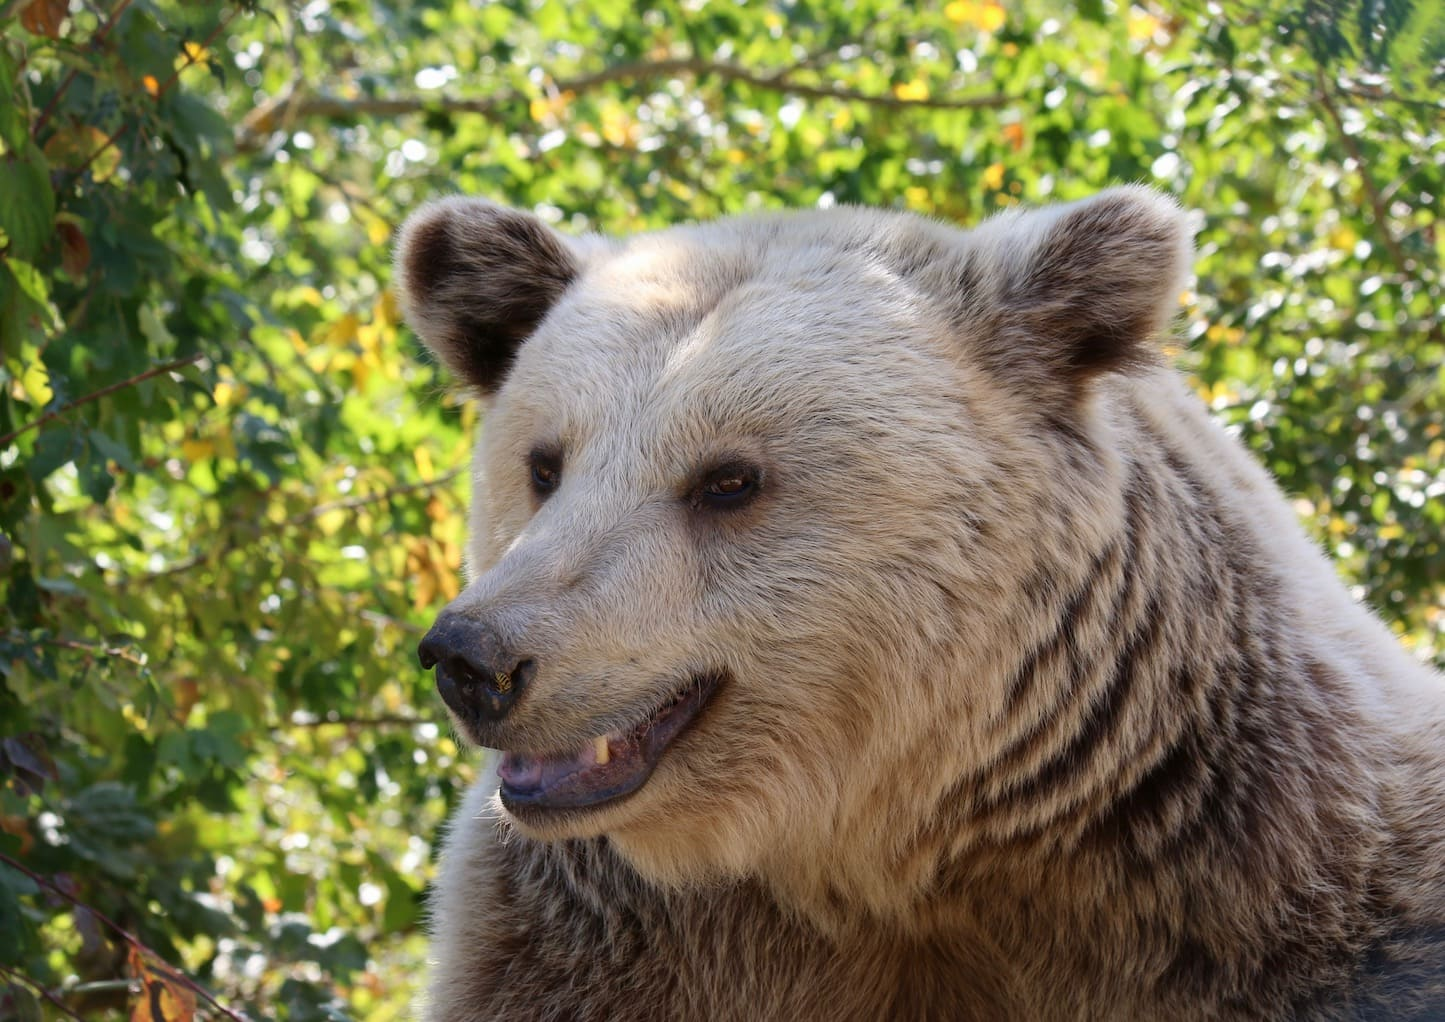 Kassandra was the first bear to move to the Bear Sanctionary